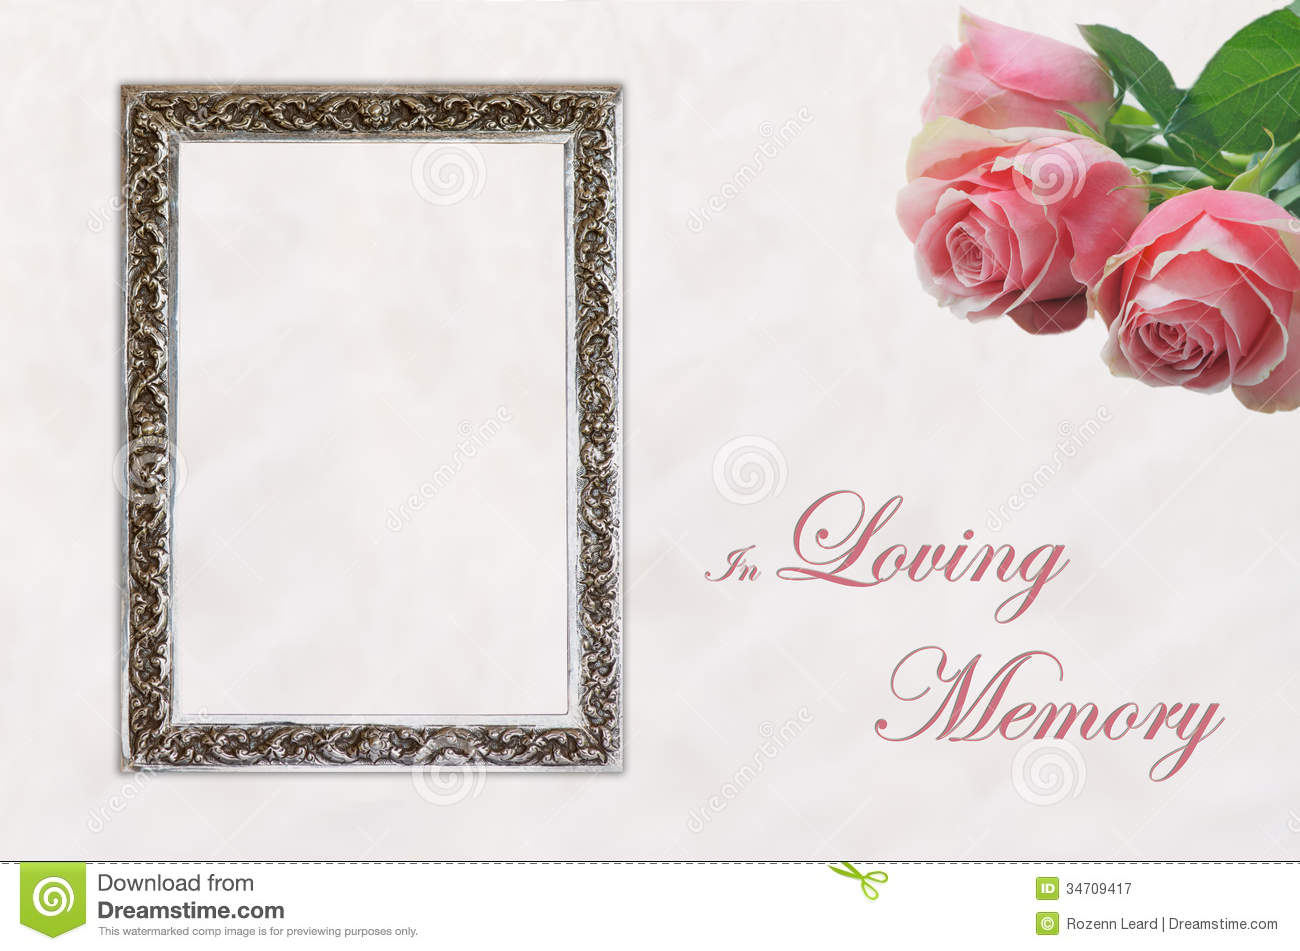 Funeral Programme Template Stock Photos - Image: 27718863